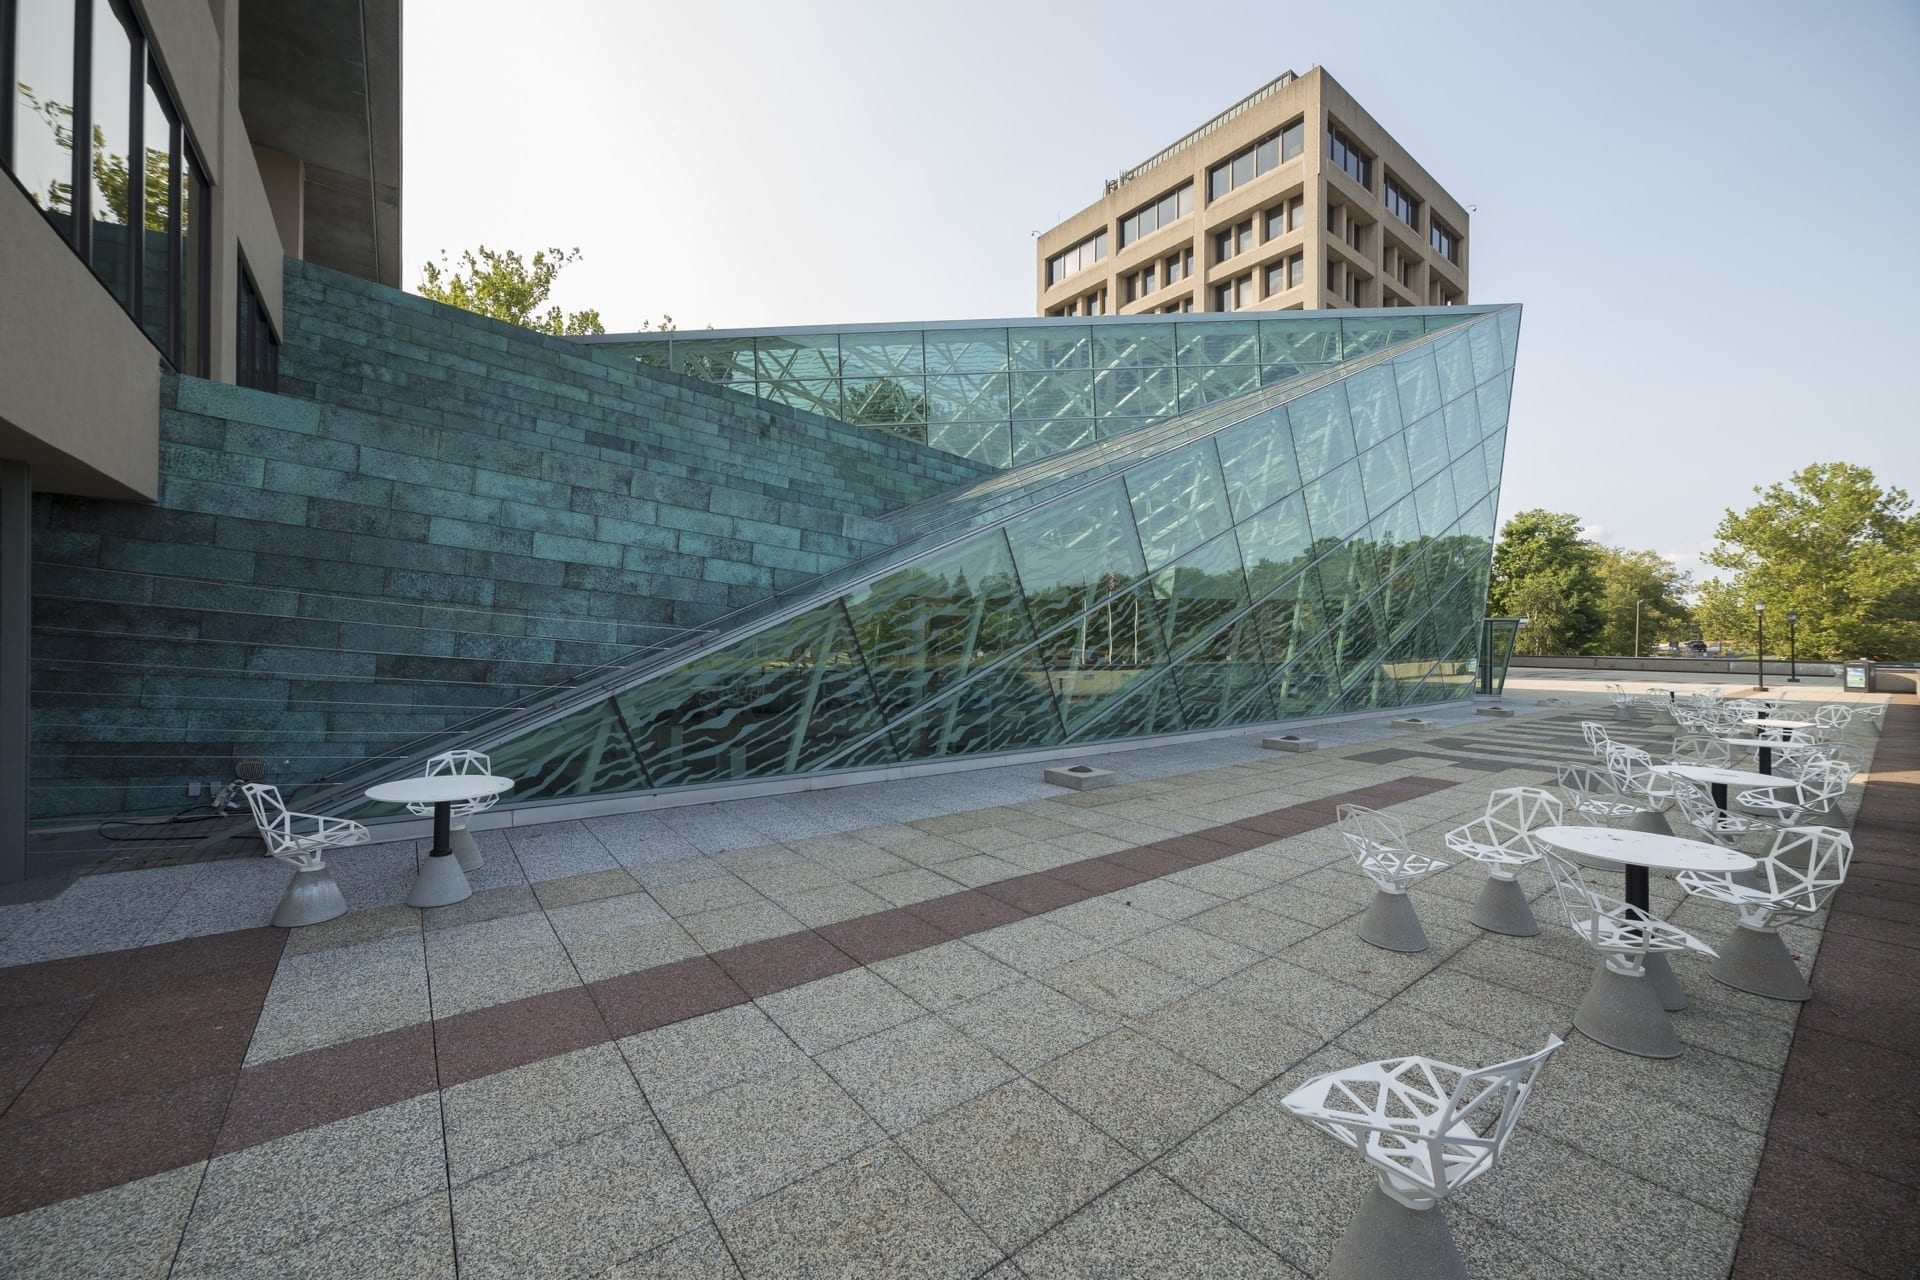 Copper and glass facade of SUNY New Paltz